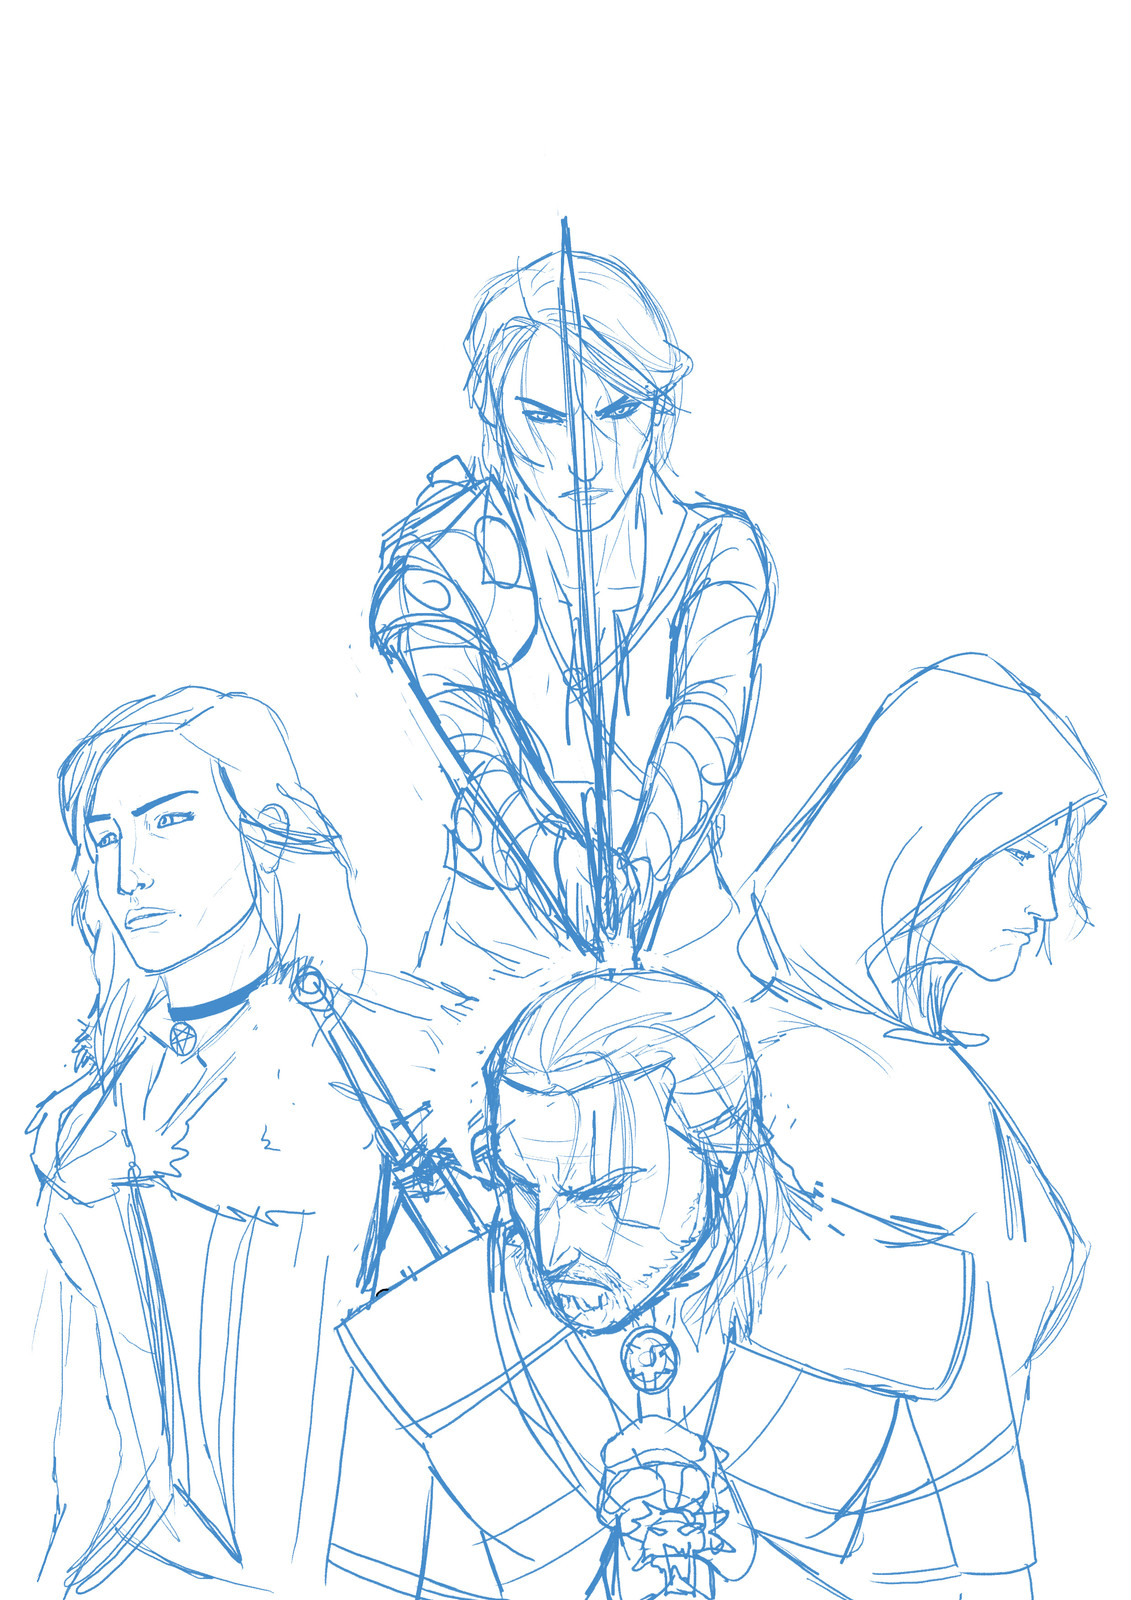 Secondary Roughs